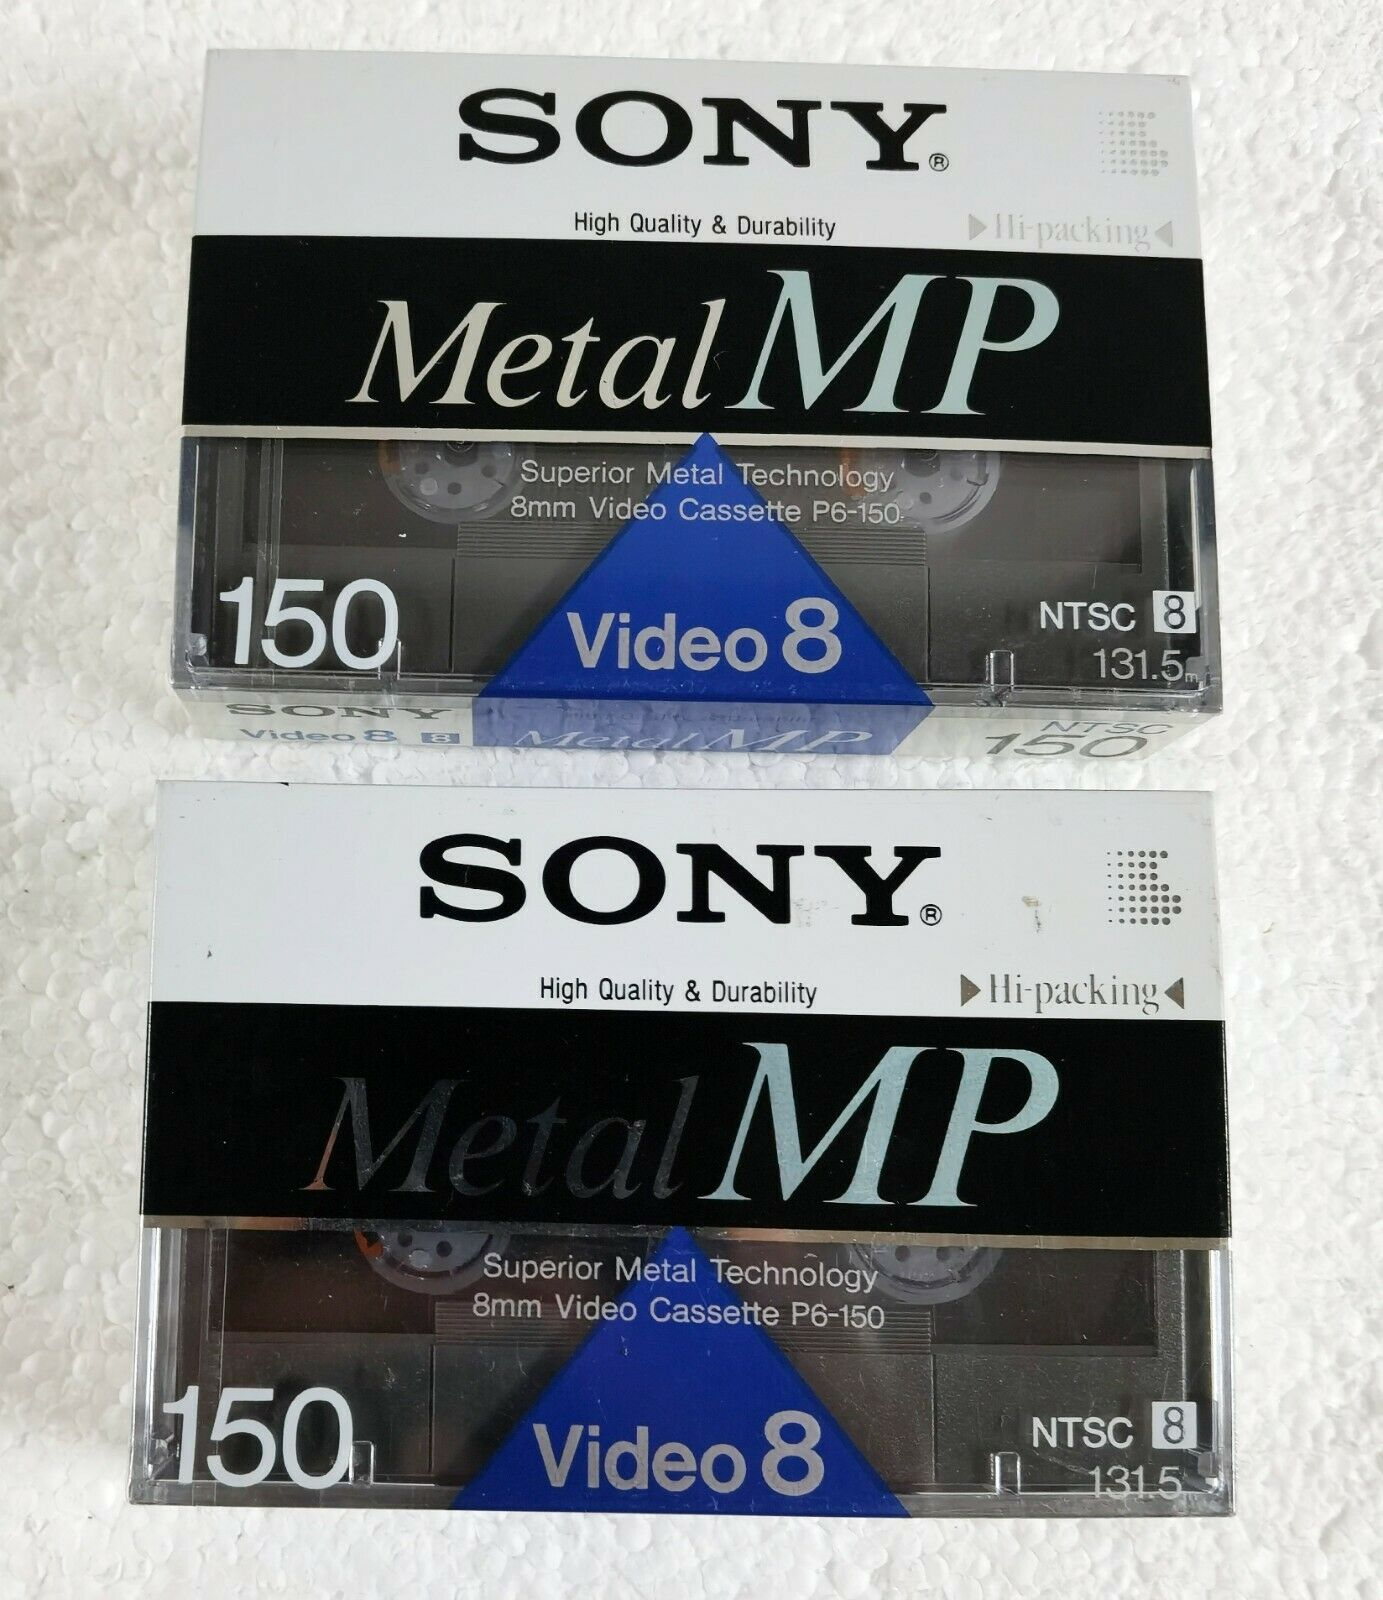 2 New Sony Metal MP 150 Video 8 NTSC 150 P6-150MP Tape - Made in Japan